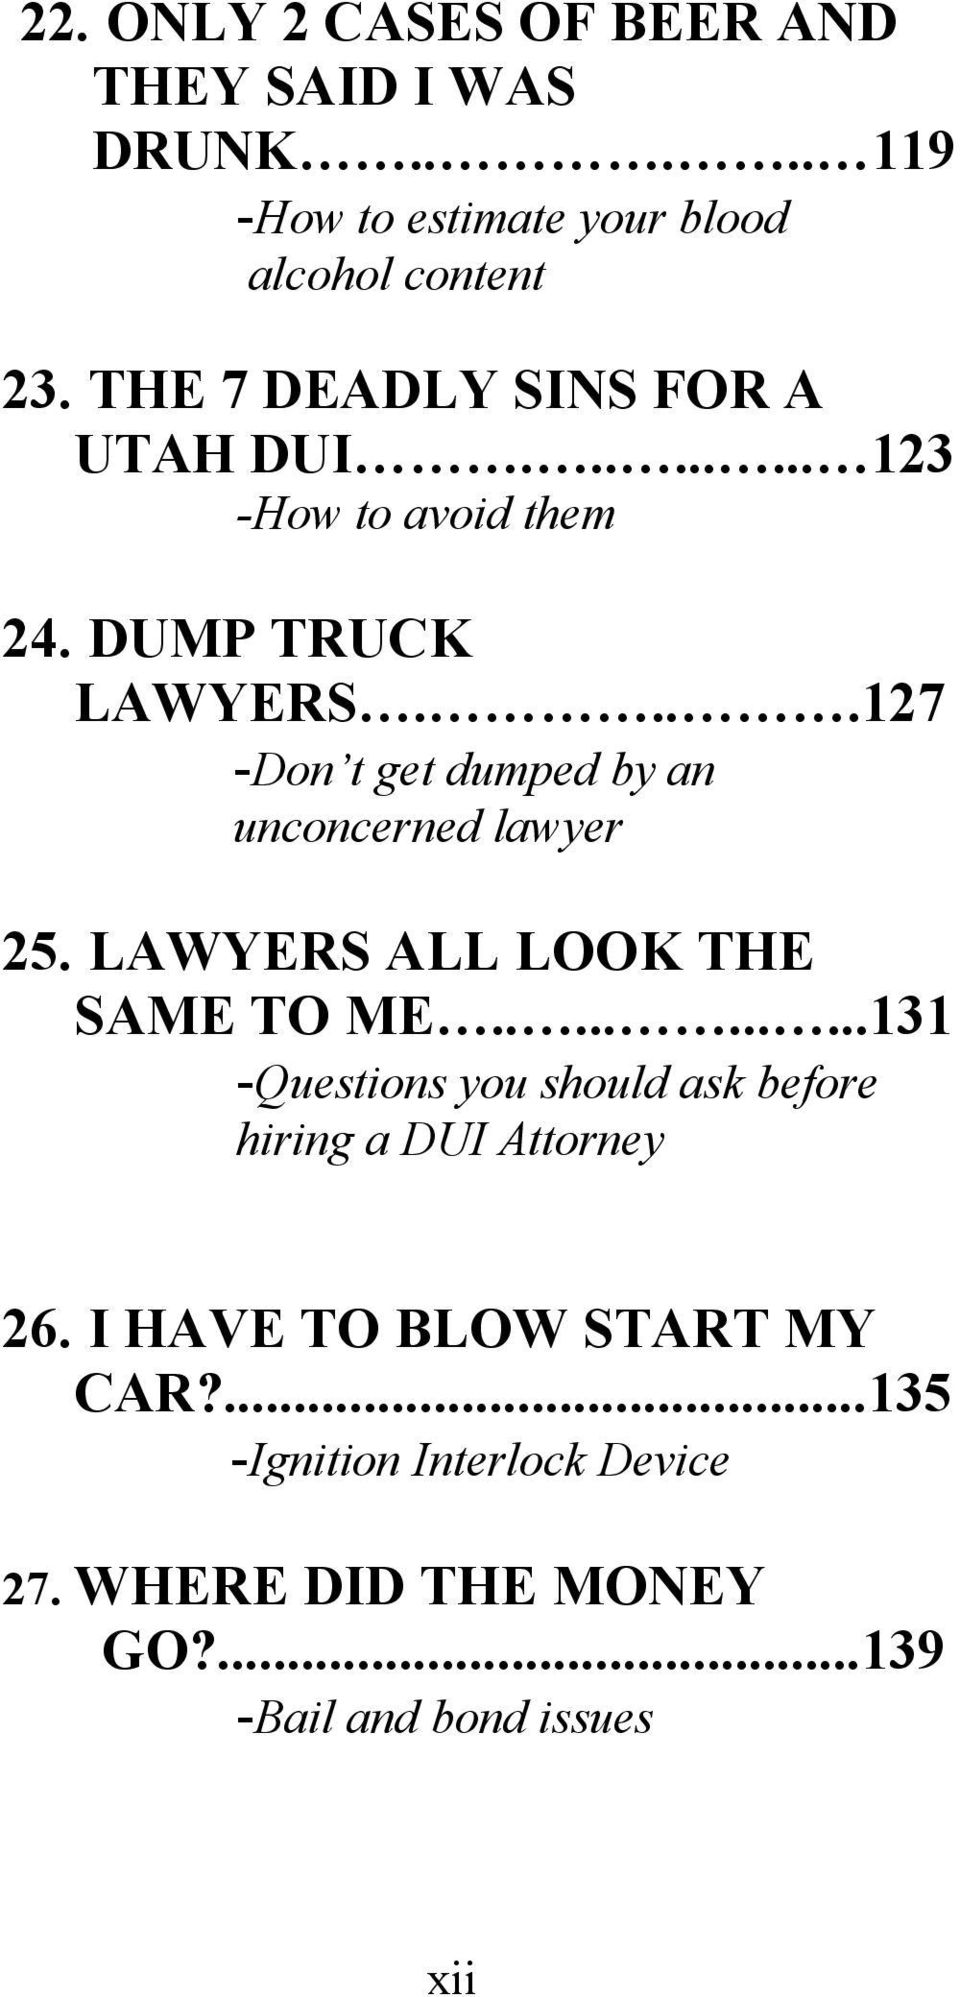 ...127 -Don t get dumped by an unconcerned lawyer 25. LAWYERS ALL LOOK THE SAME TO ME.